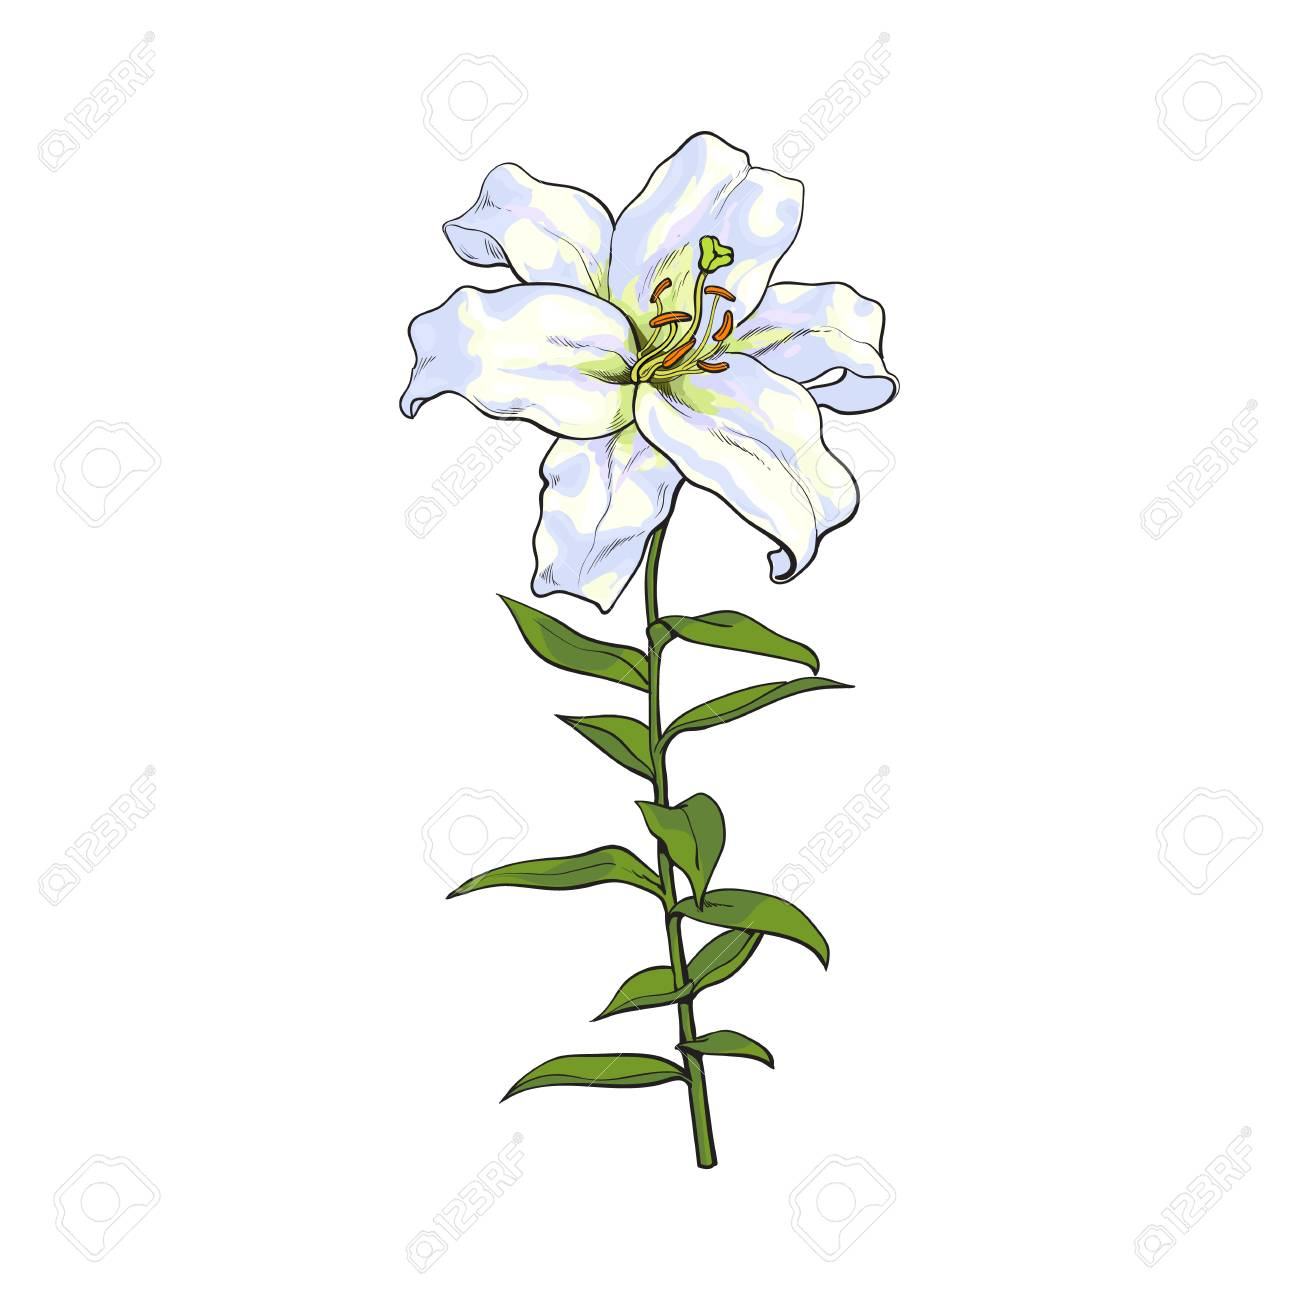 Single Hand Drawn White Lily Flower With Stem And Leaves, Front ...